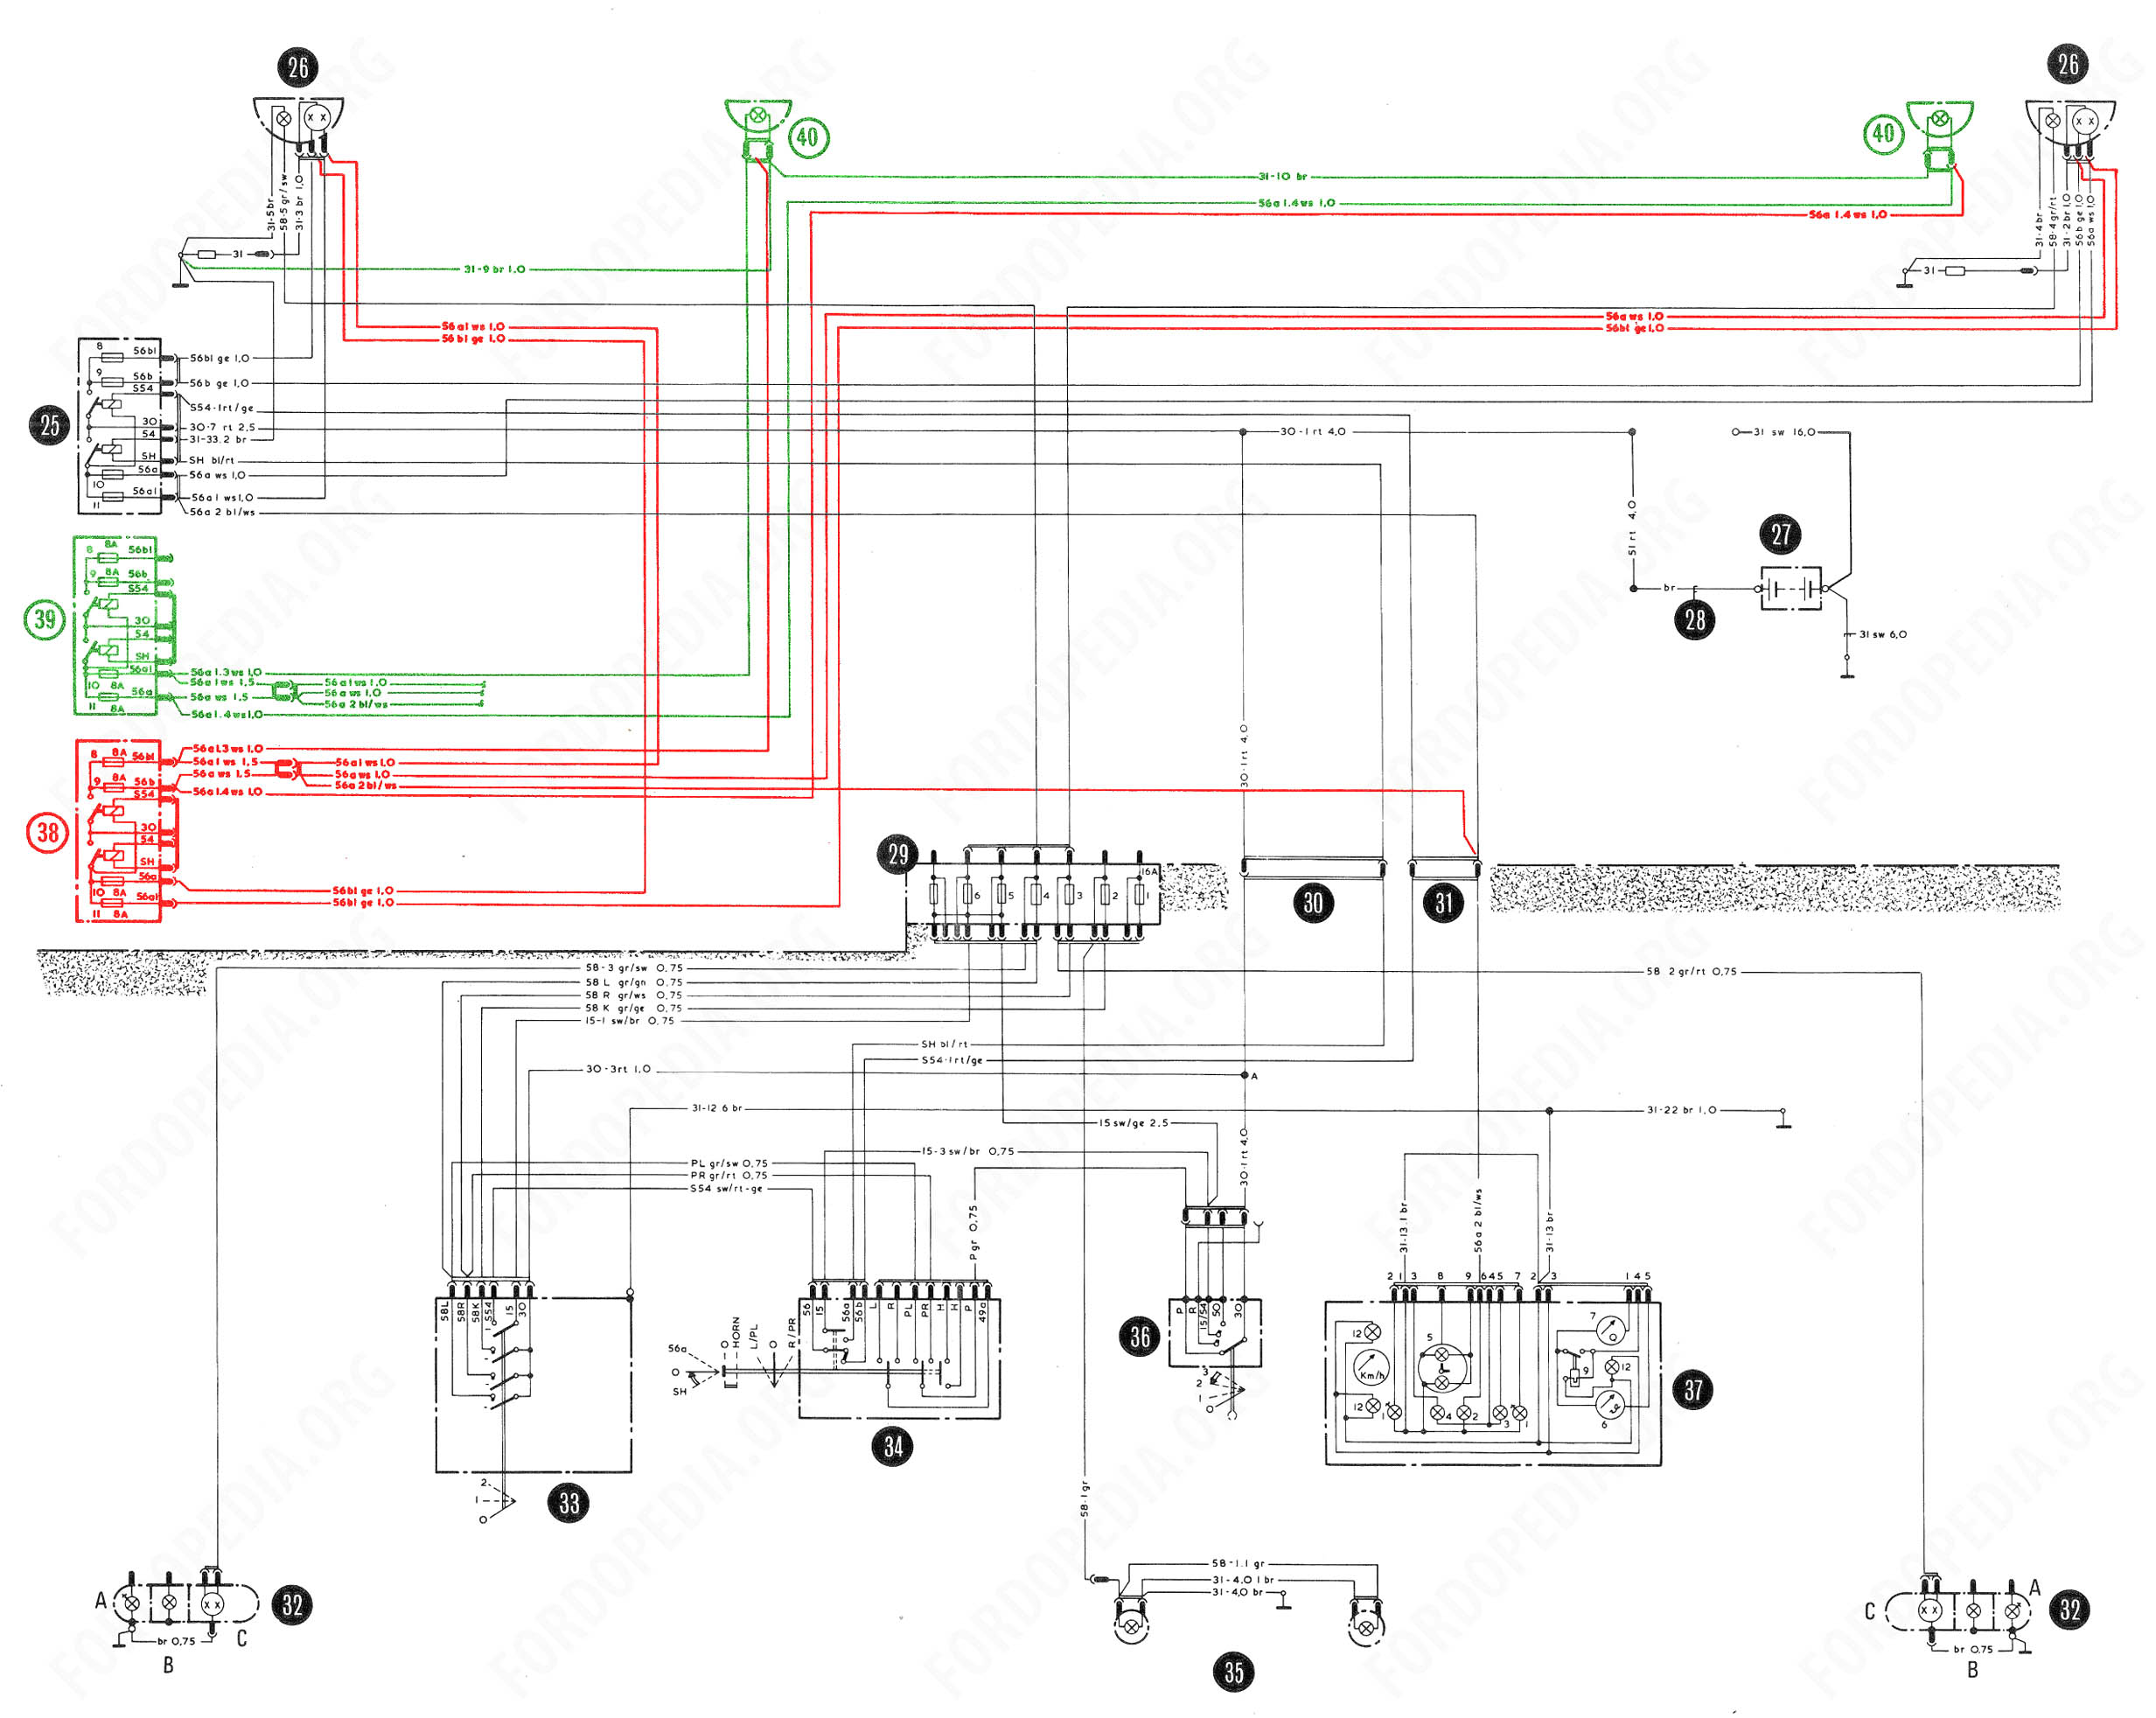 Download full-size image (2465x1964, 548 kB) Wiring diagrams: Taunus TC2 /  Cortina Mk4 - base version, L version, GL